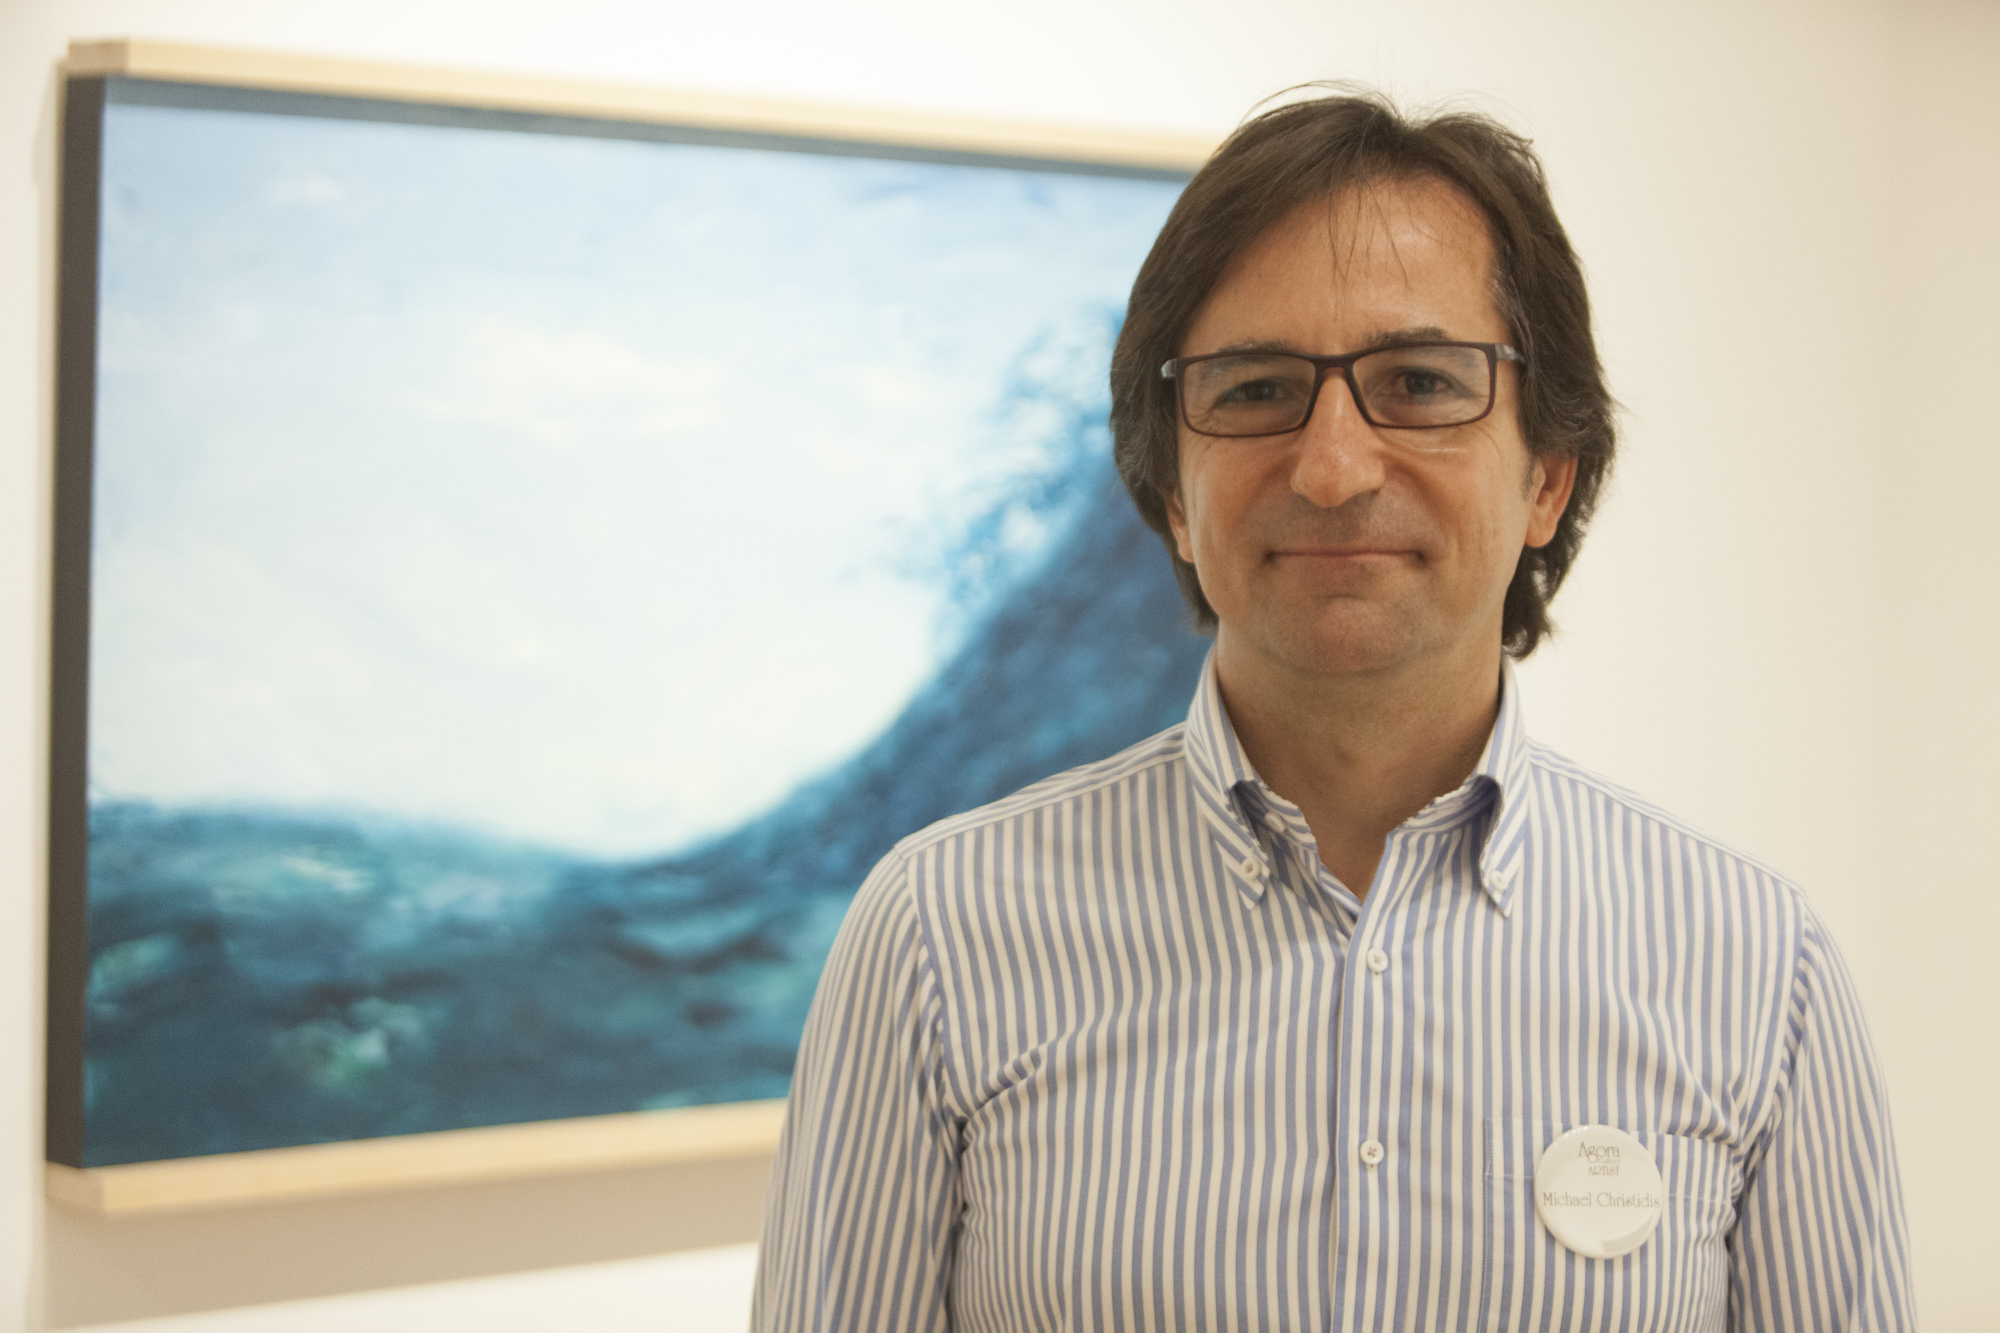 Michael Christidis at the August 27 Opening Reception